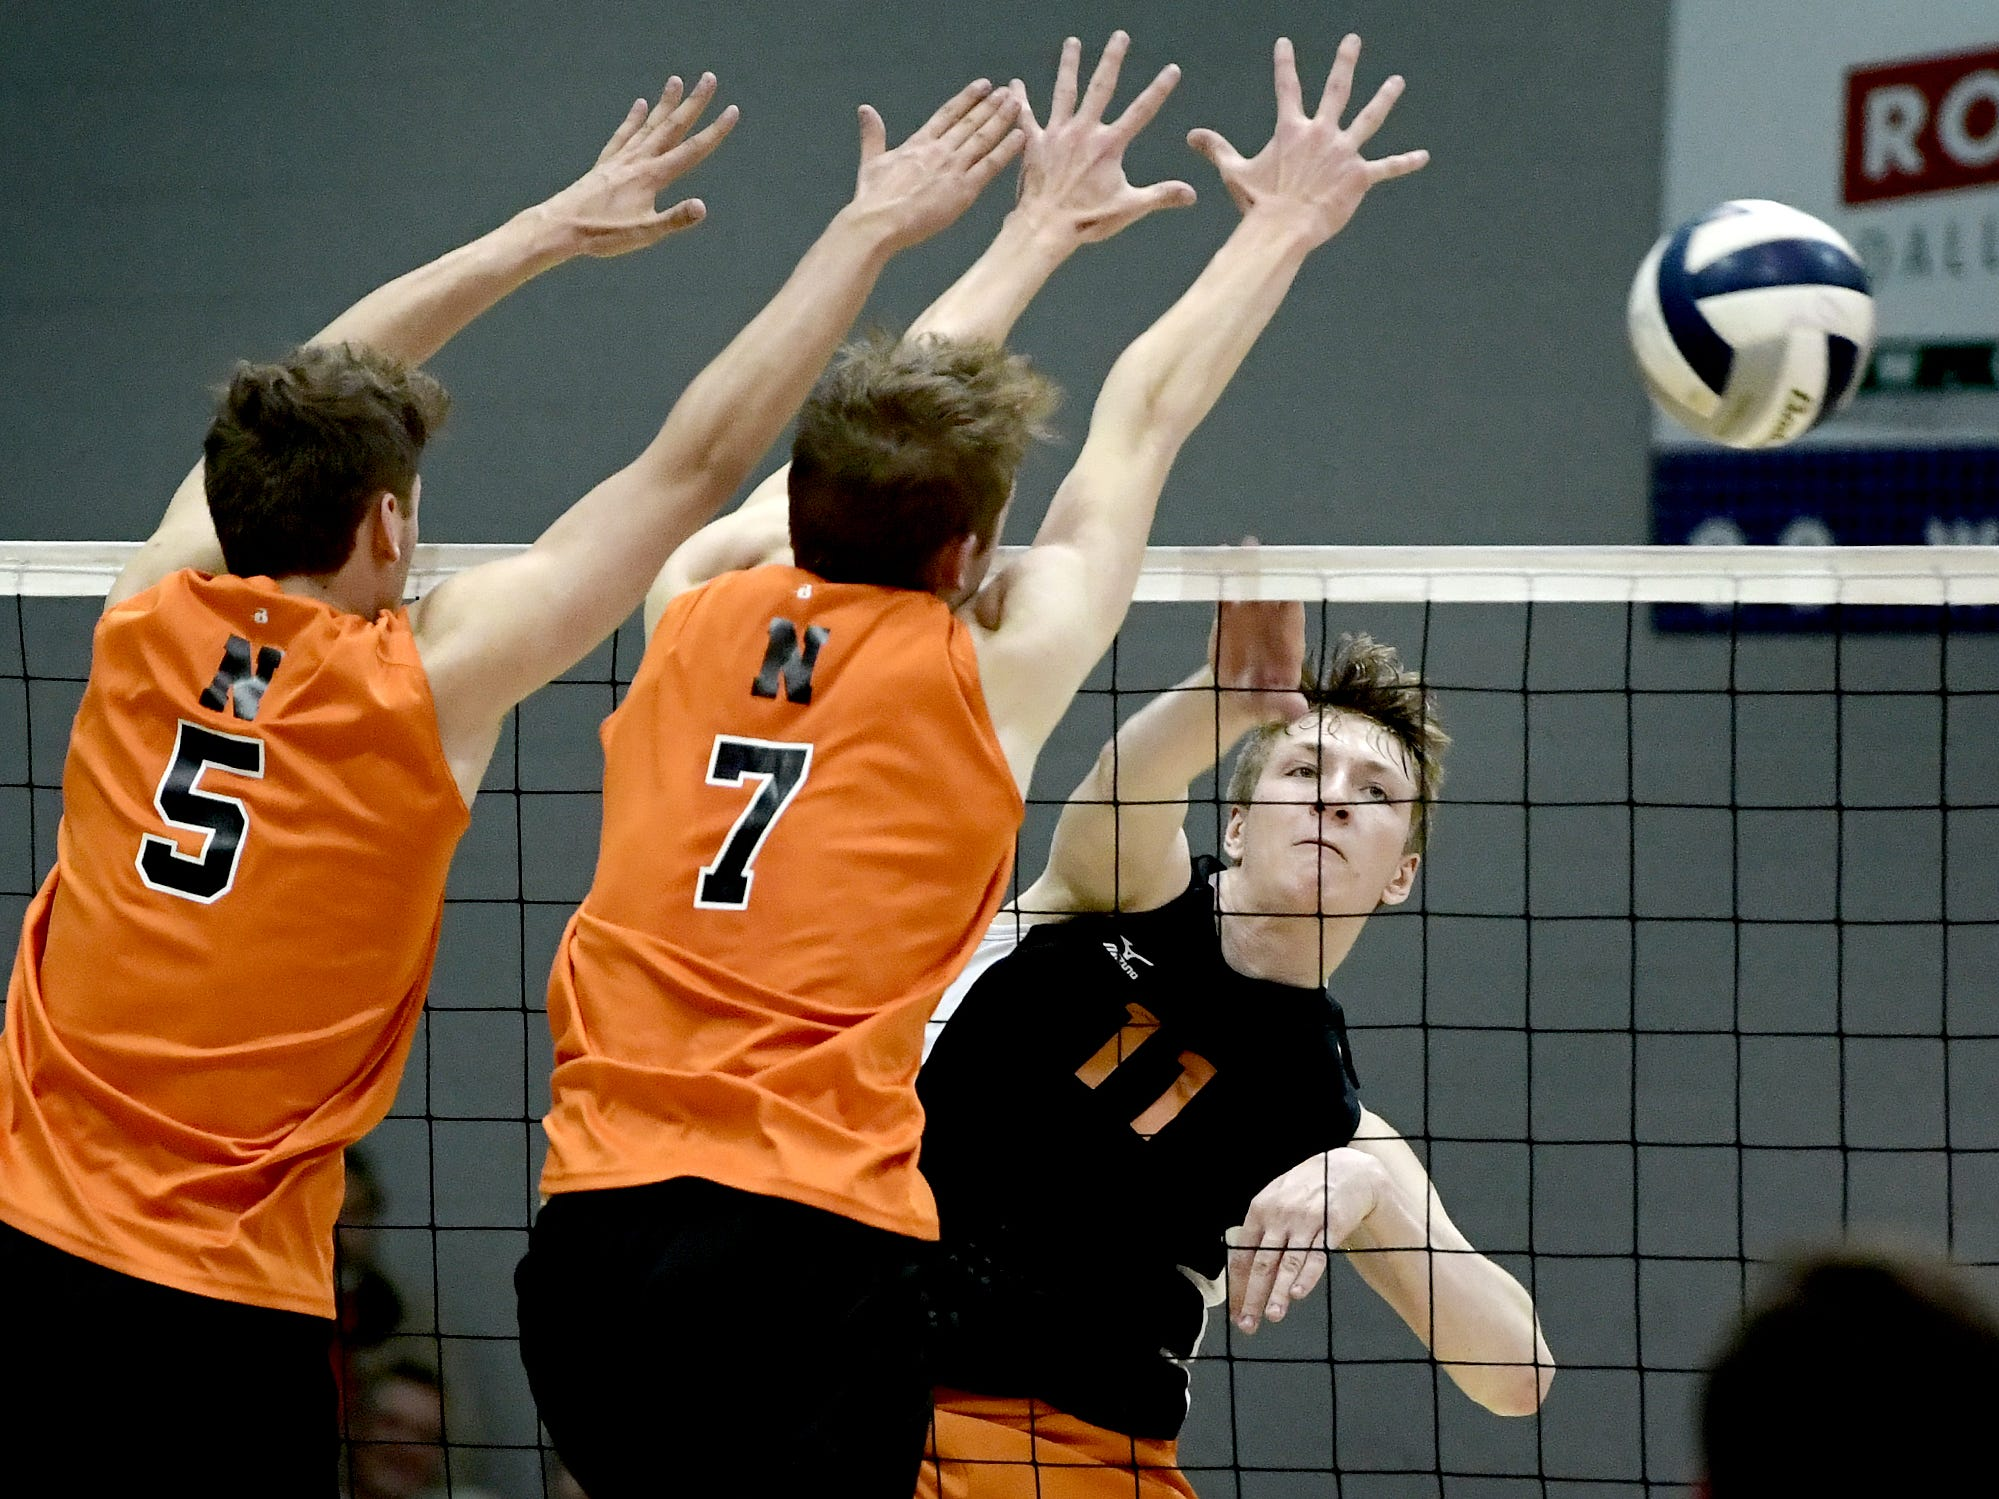 Central York's Braden Richard beyond the reach of Northeastern's Nate Wilson, left, and Alex Finch in the York-Adams boys' volleyball championship match at Dallastown Tuesday, May 14, 2019. Bill Kalina photo